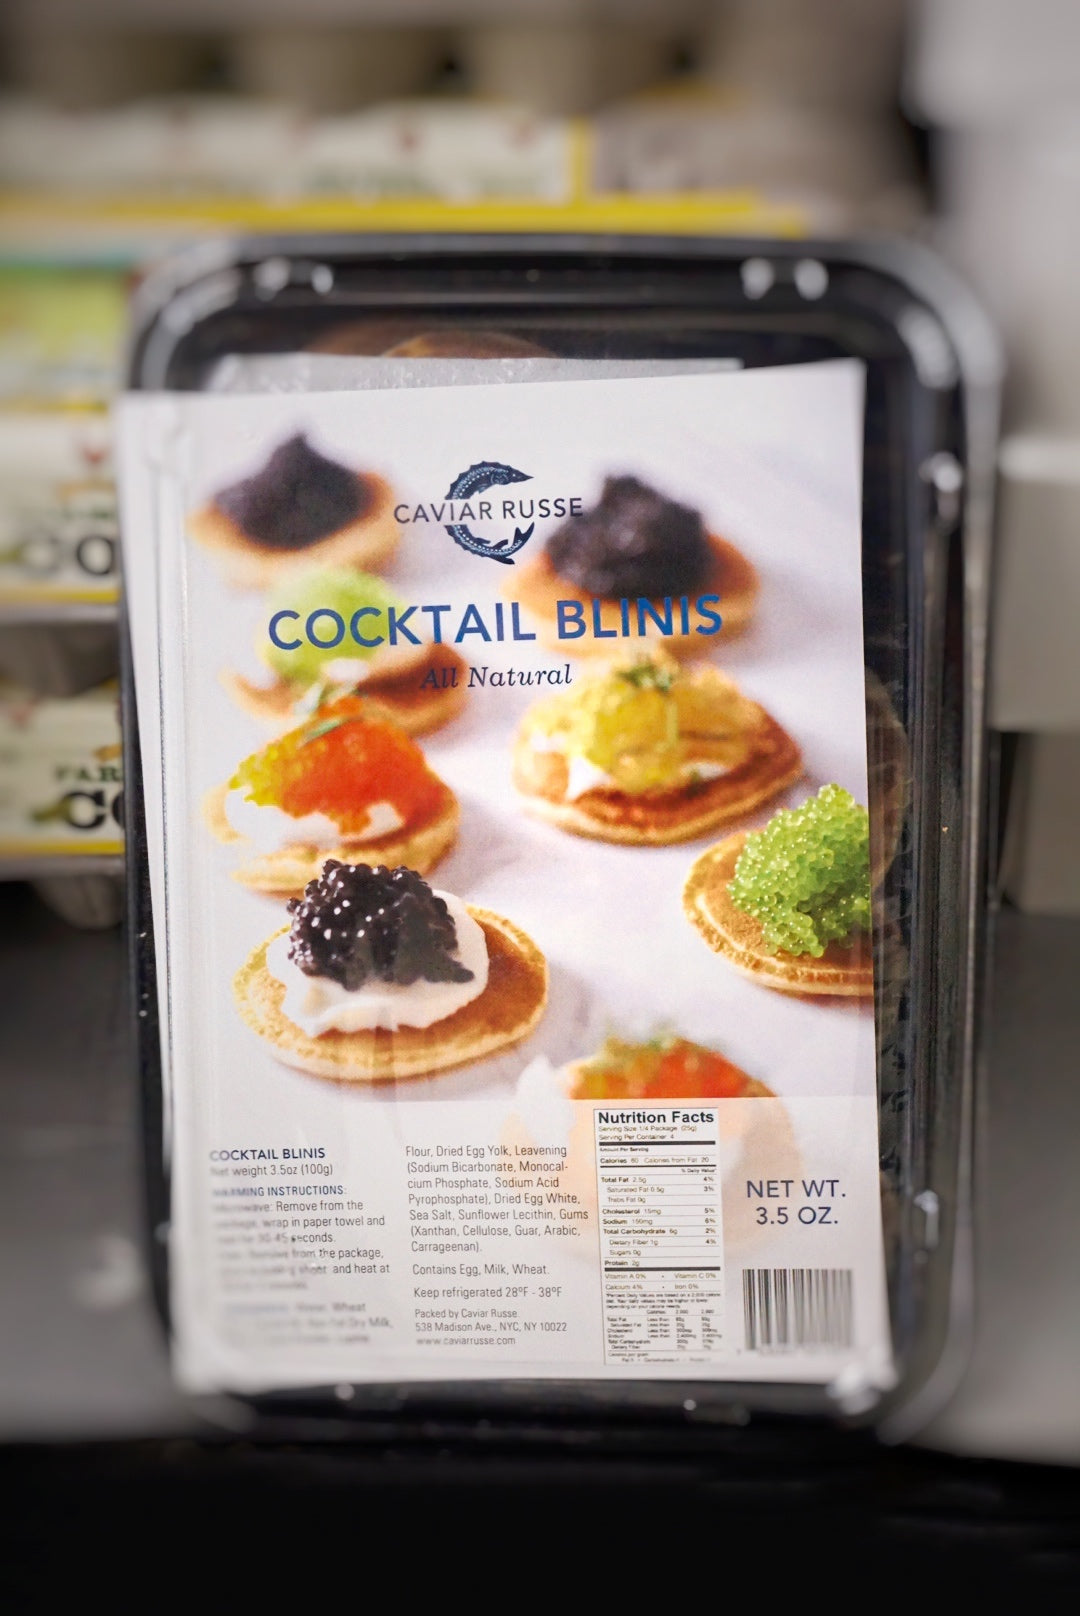 Caviar Russe Cocktail Blinis